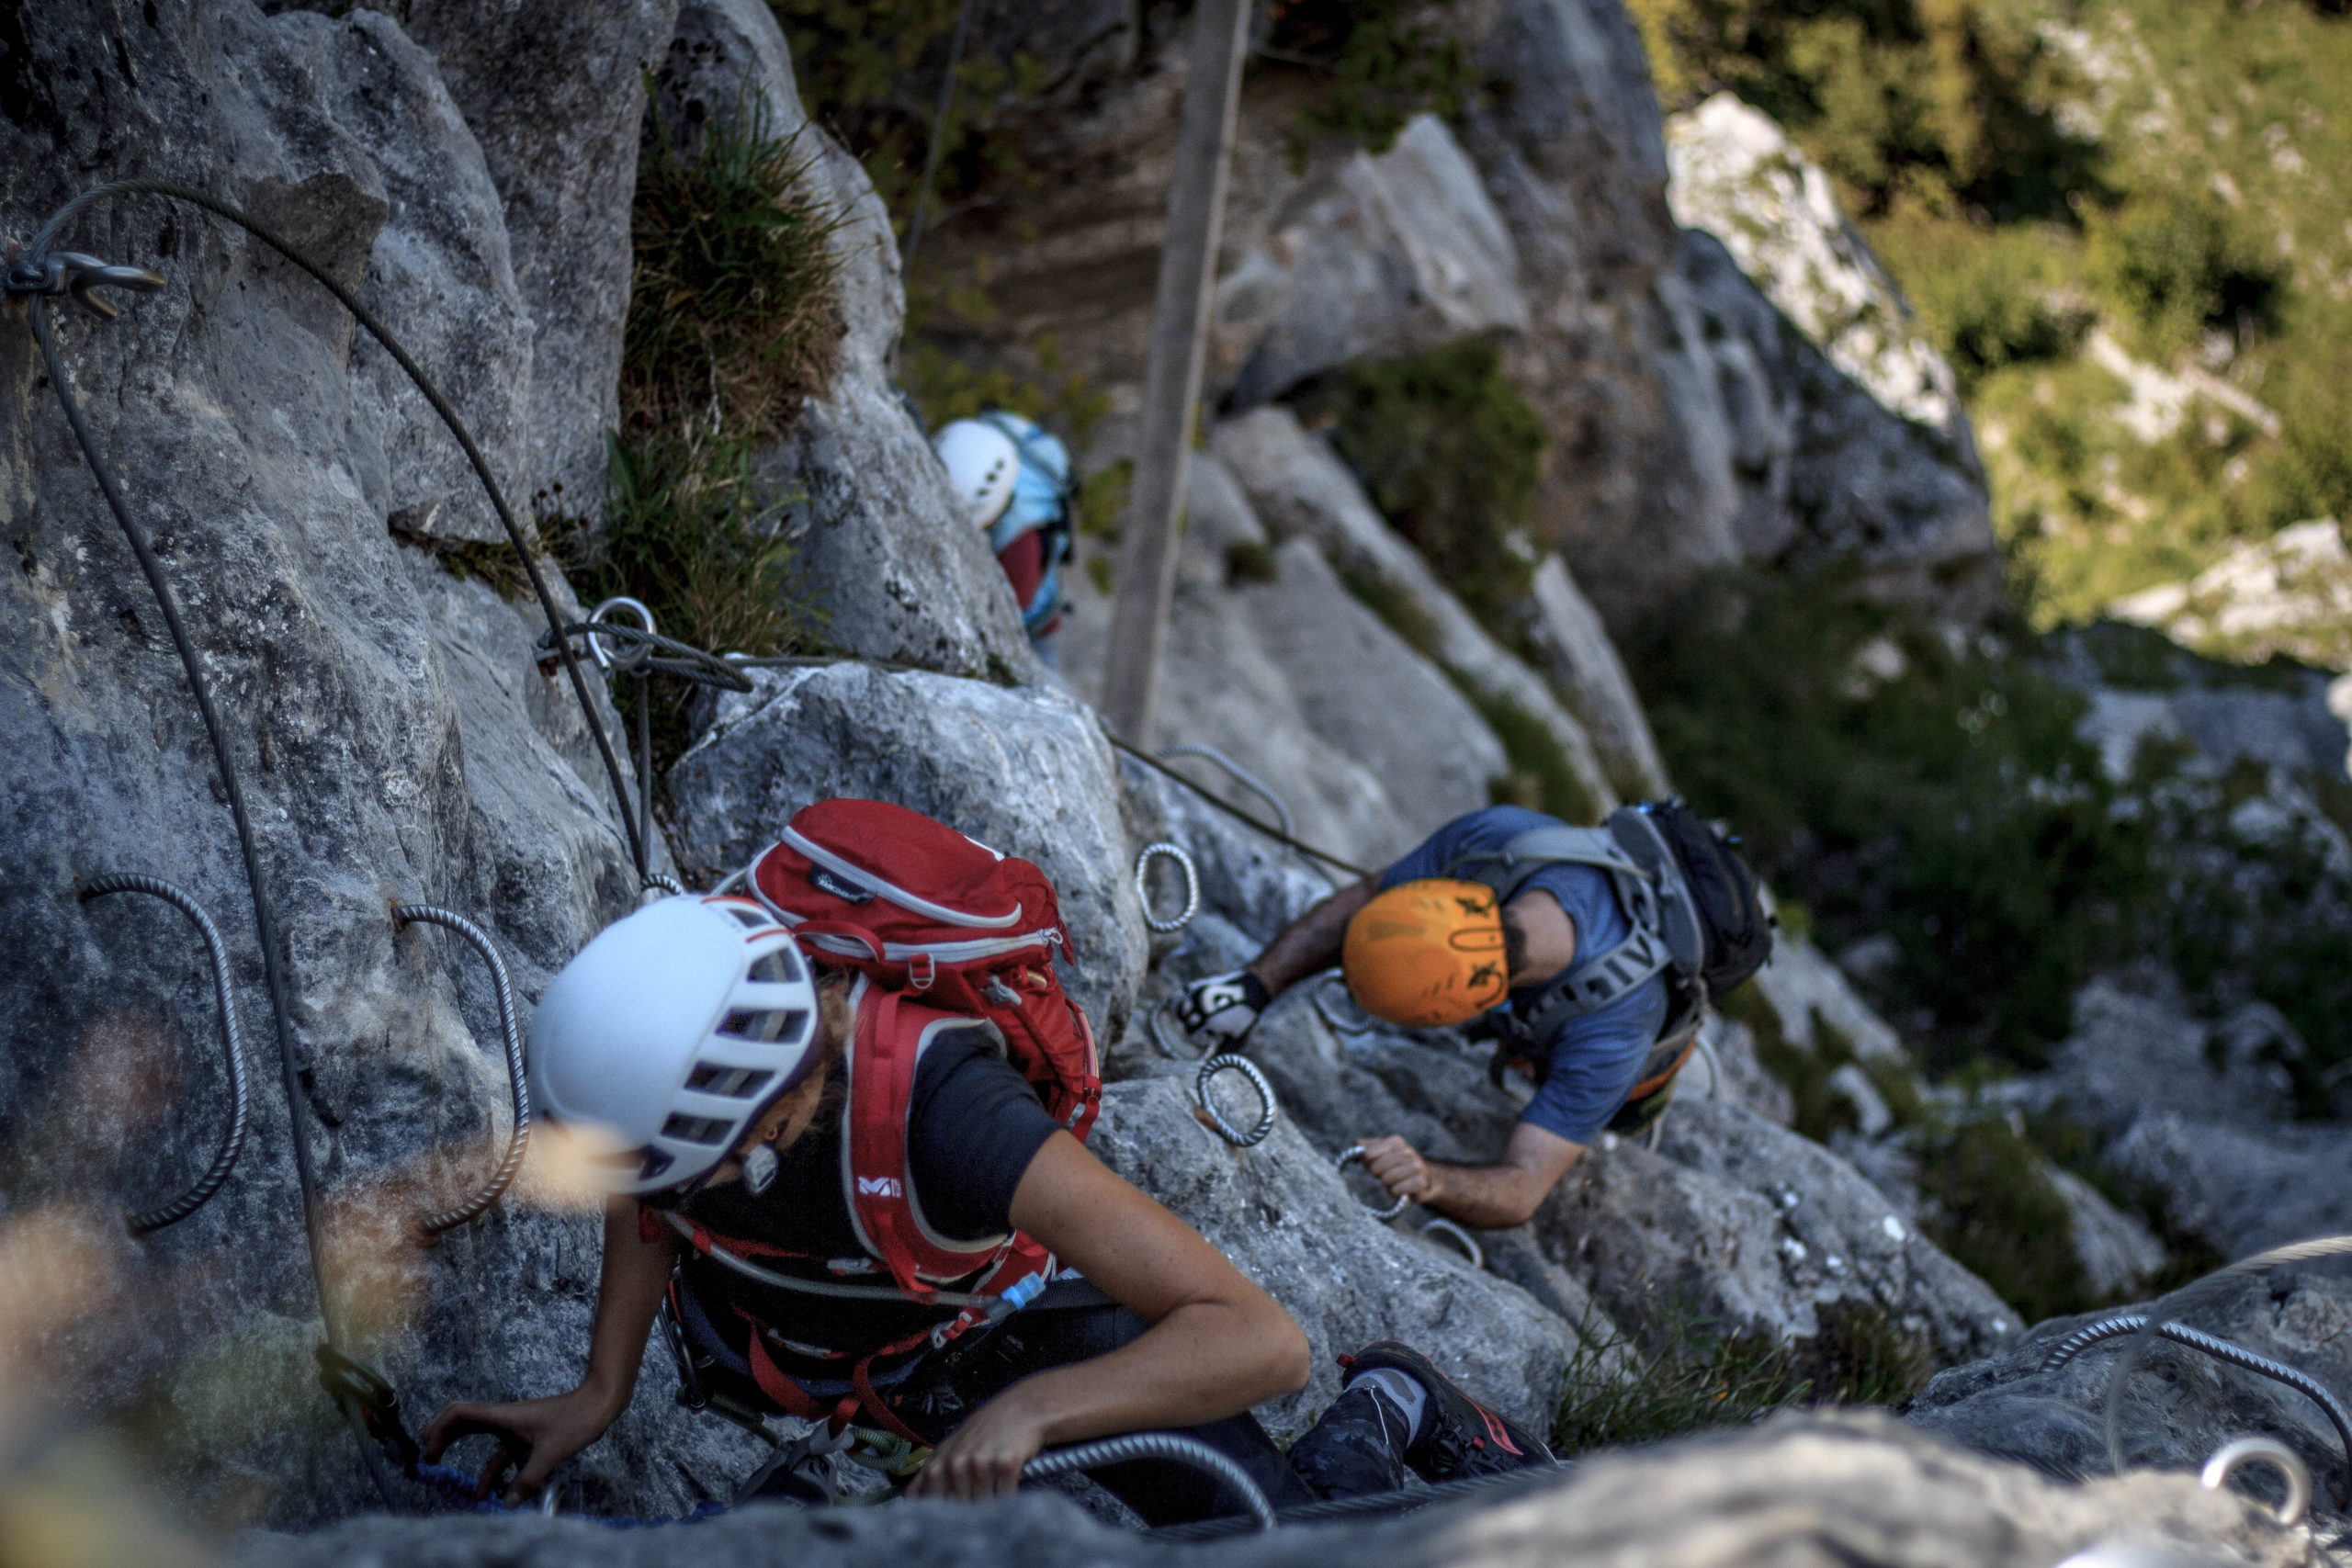 via ferrata curalla passy - the weekend warrior.fr 07